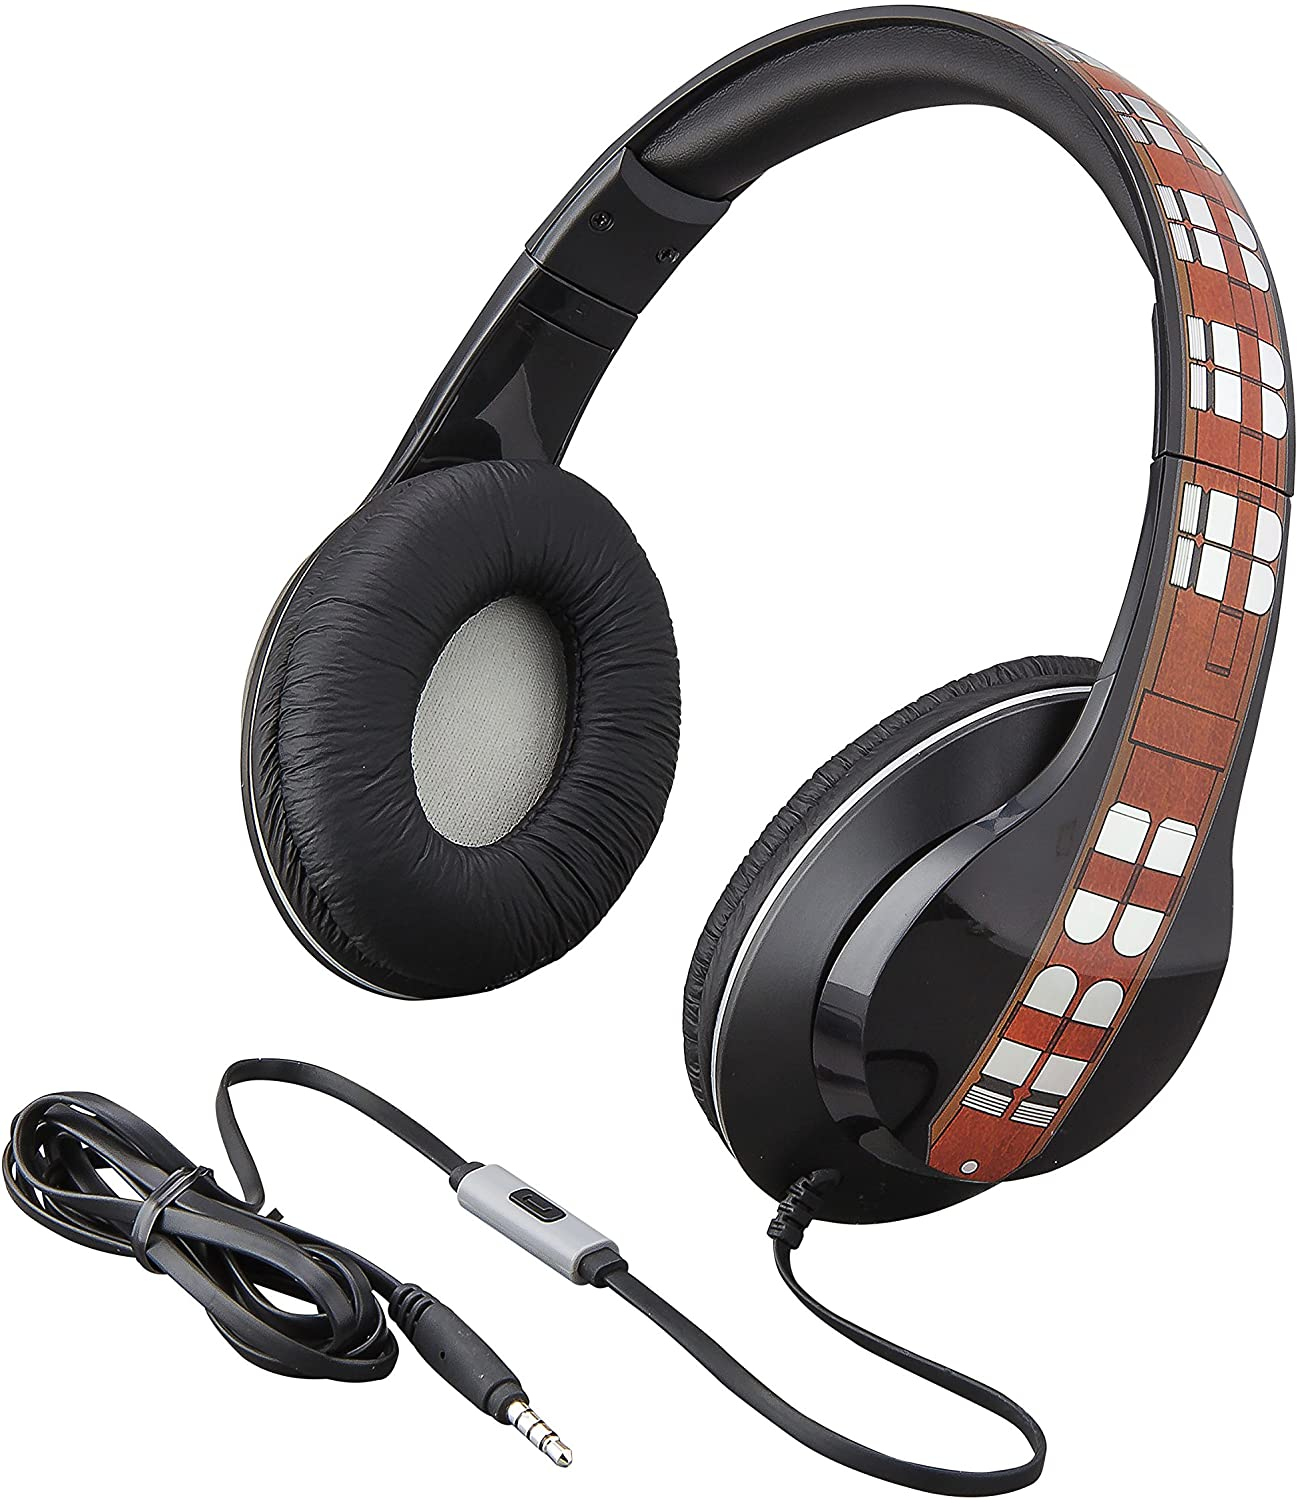 Star Wars Han Solo Movie Chewbacca Over The Ear Headphones